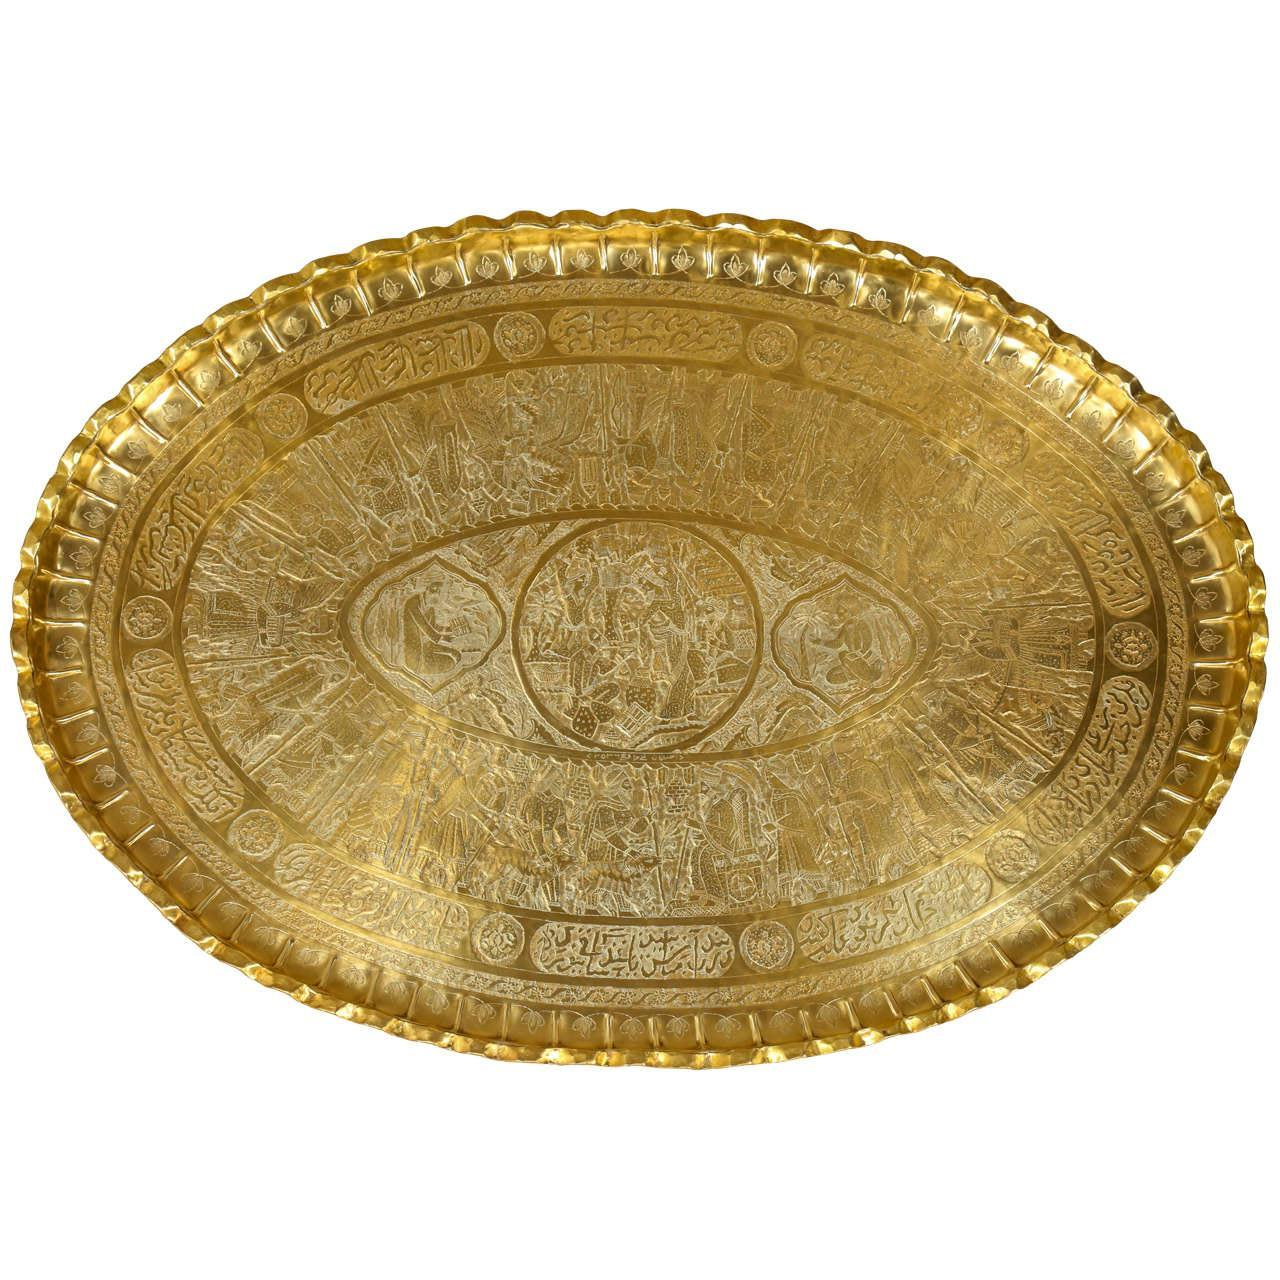 Large Assyrian Revival Silver Tray For Sale at 1stdibs